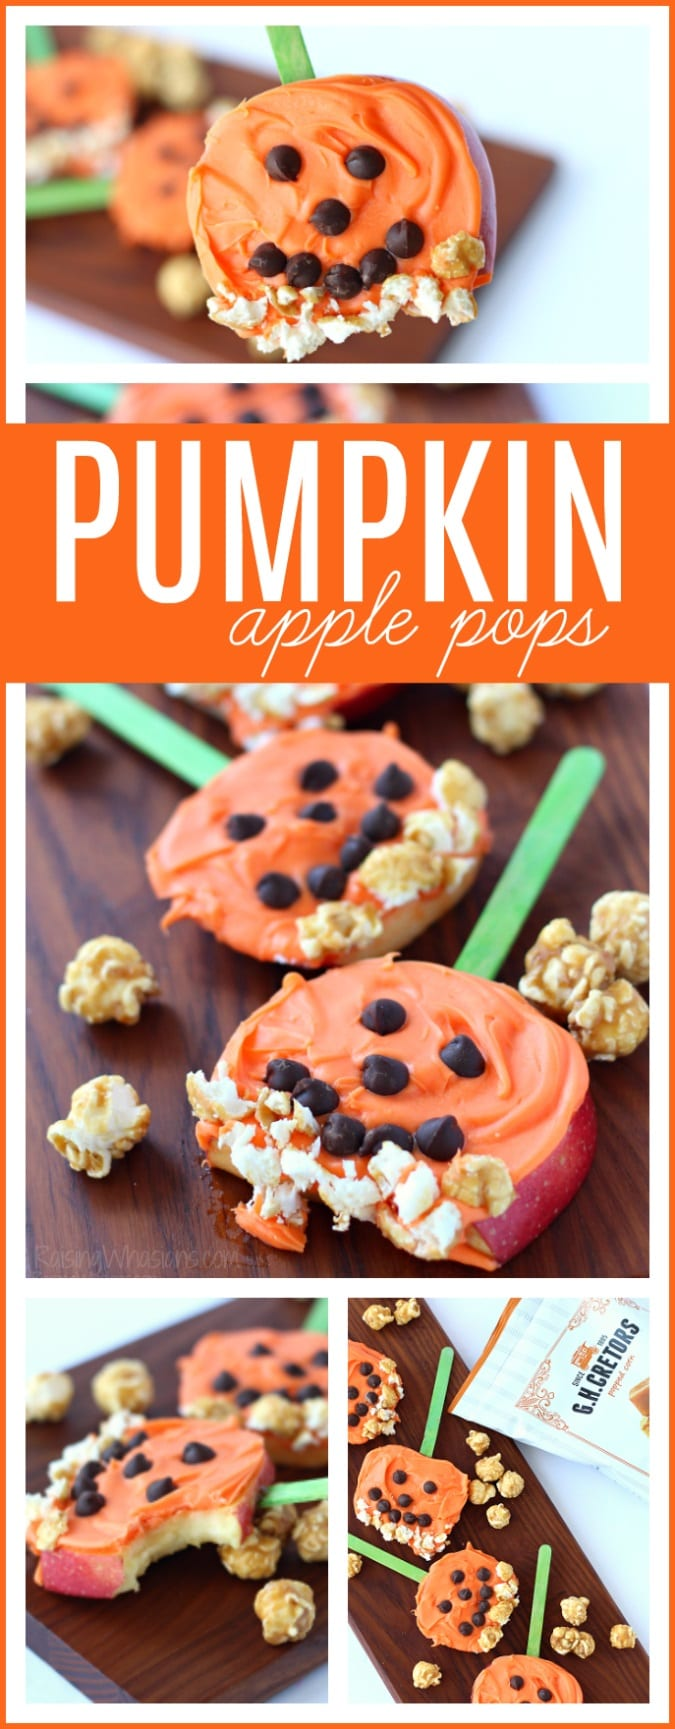 Pumpkin apple pops pinterest